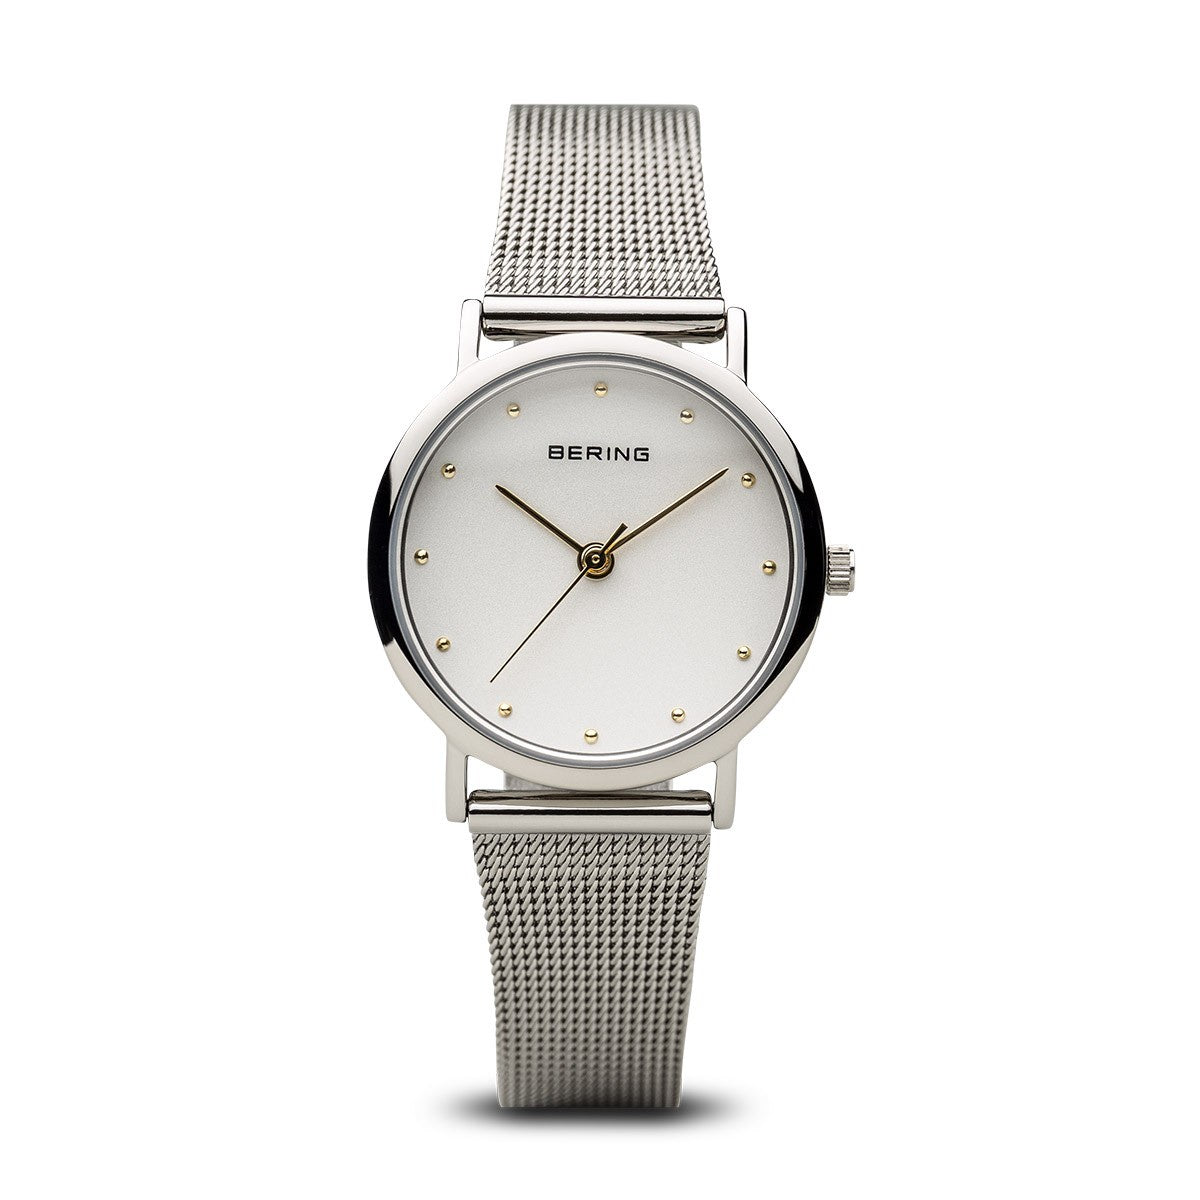 Bering Womens Classic Polished Silver Watch 13426-001 - Robert Openshaw Fine Jewellery